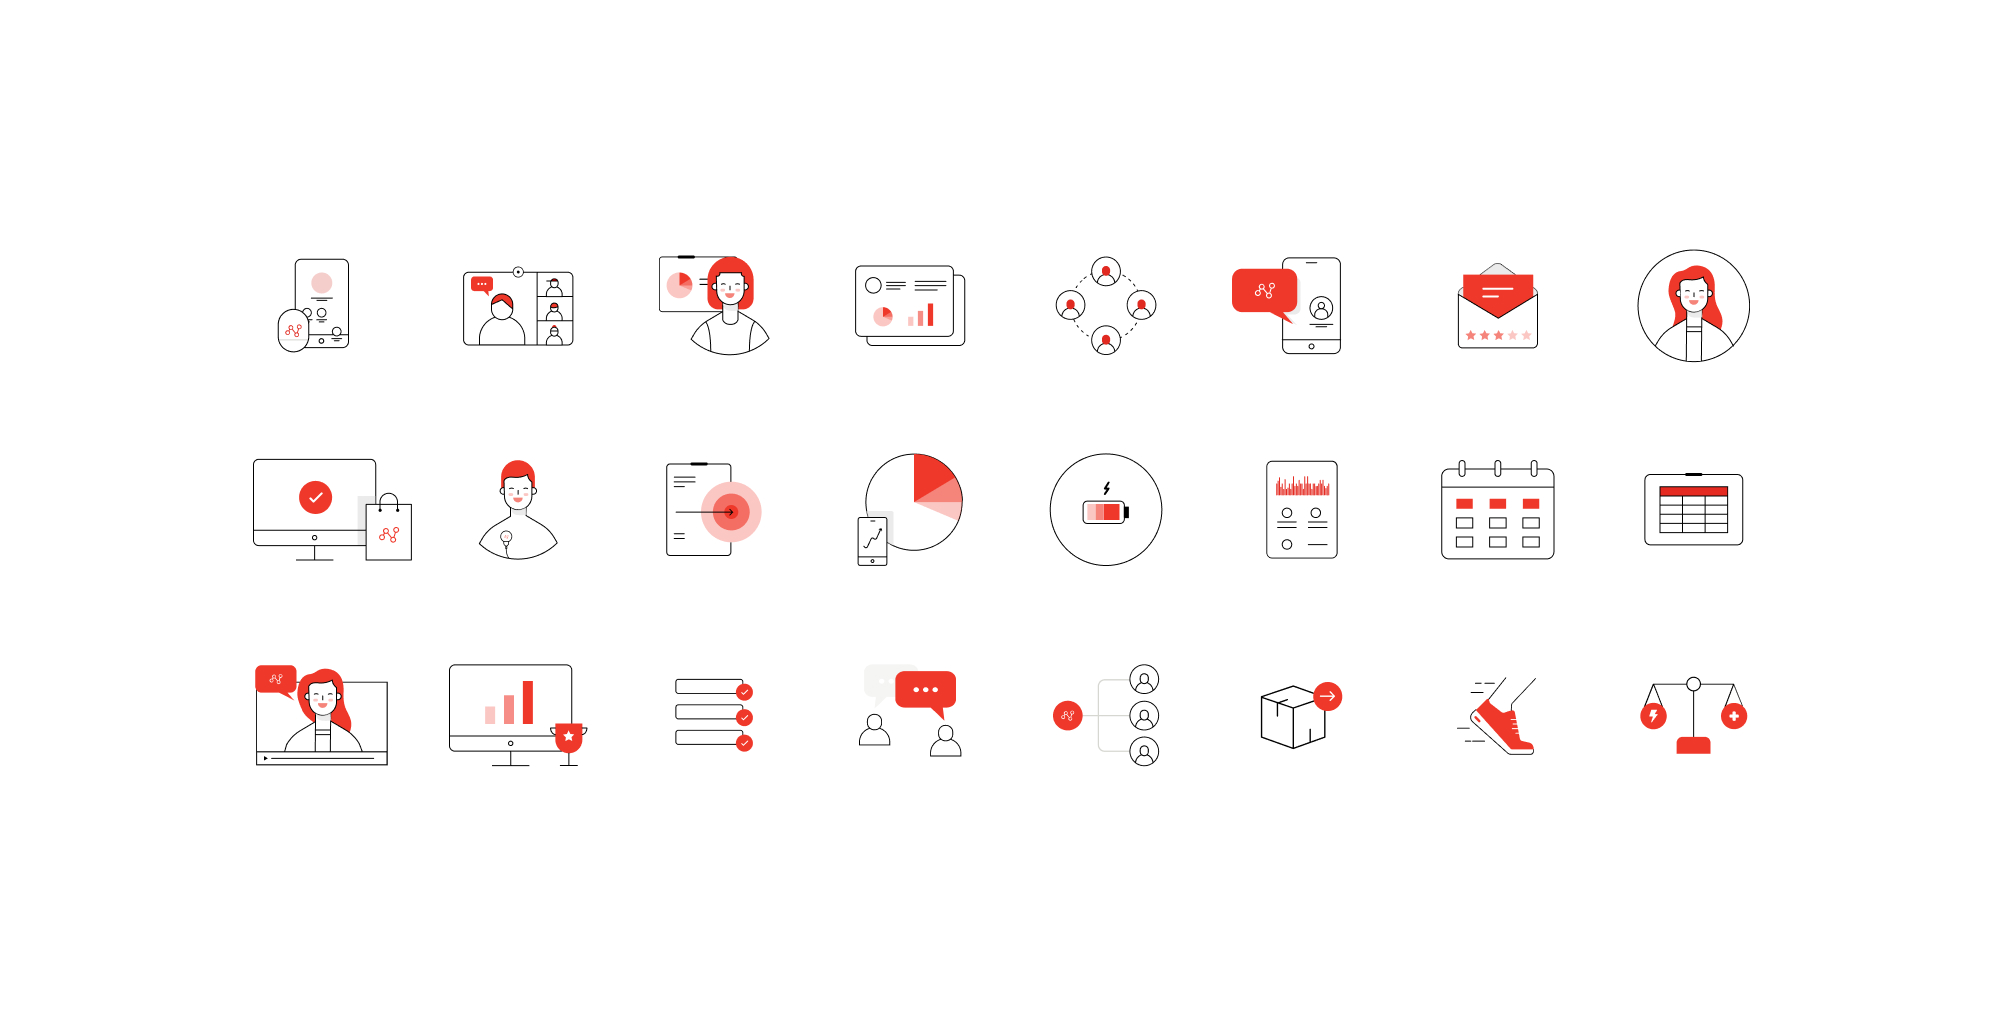 Firstbeat iconography